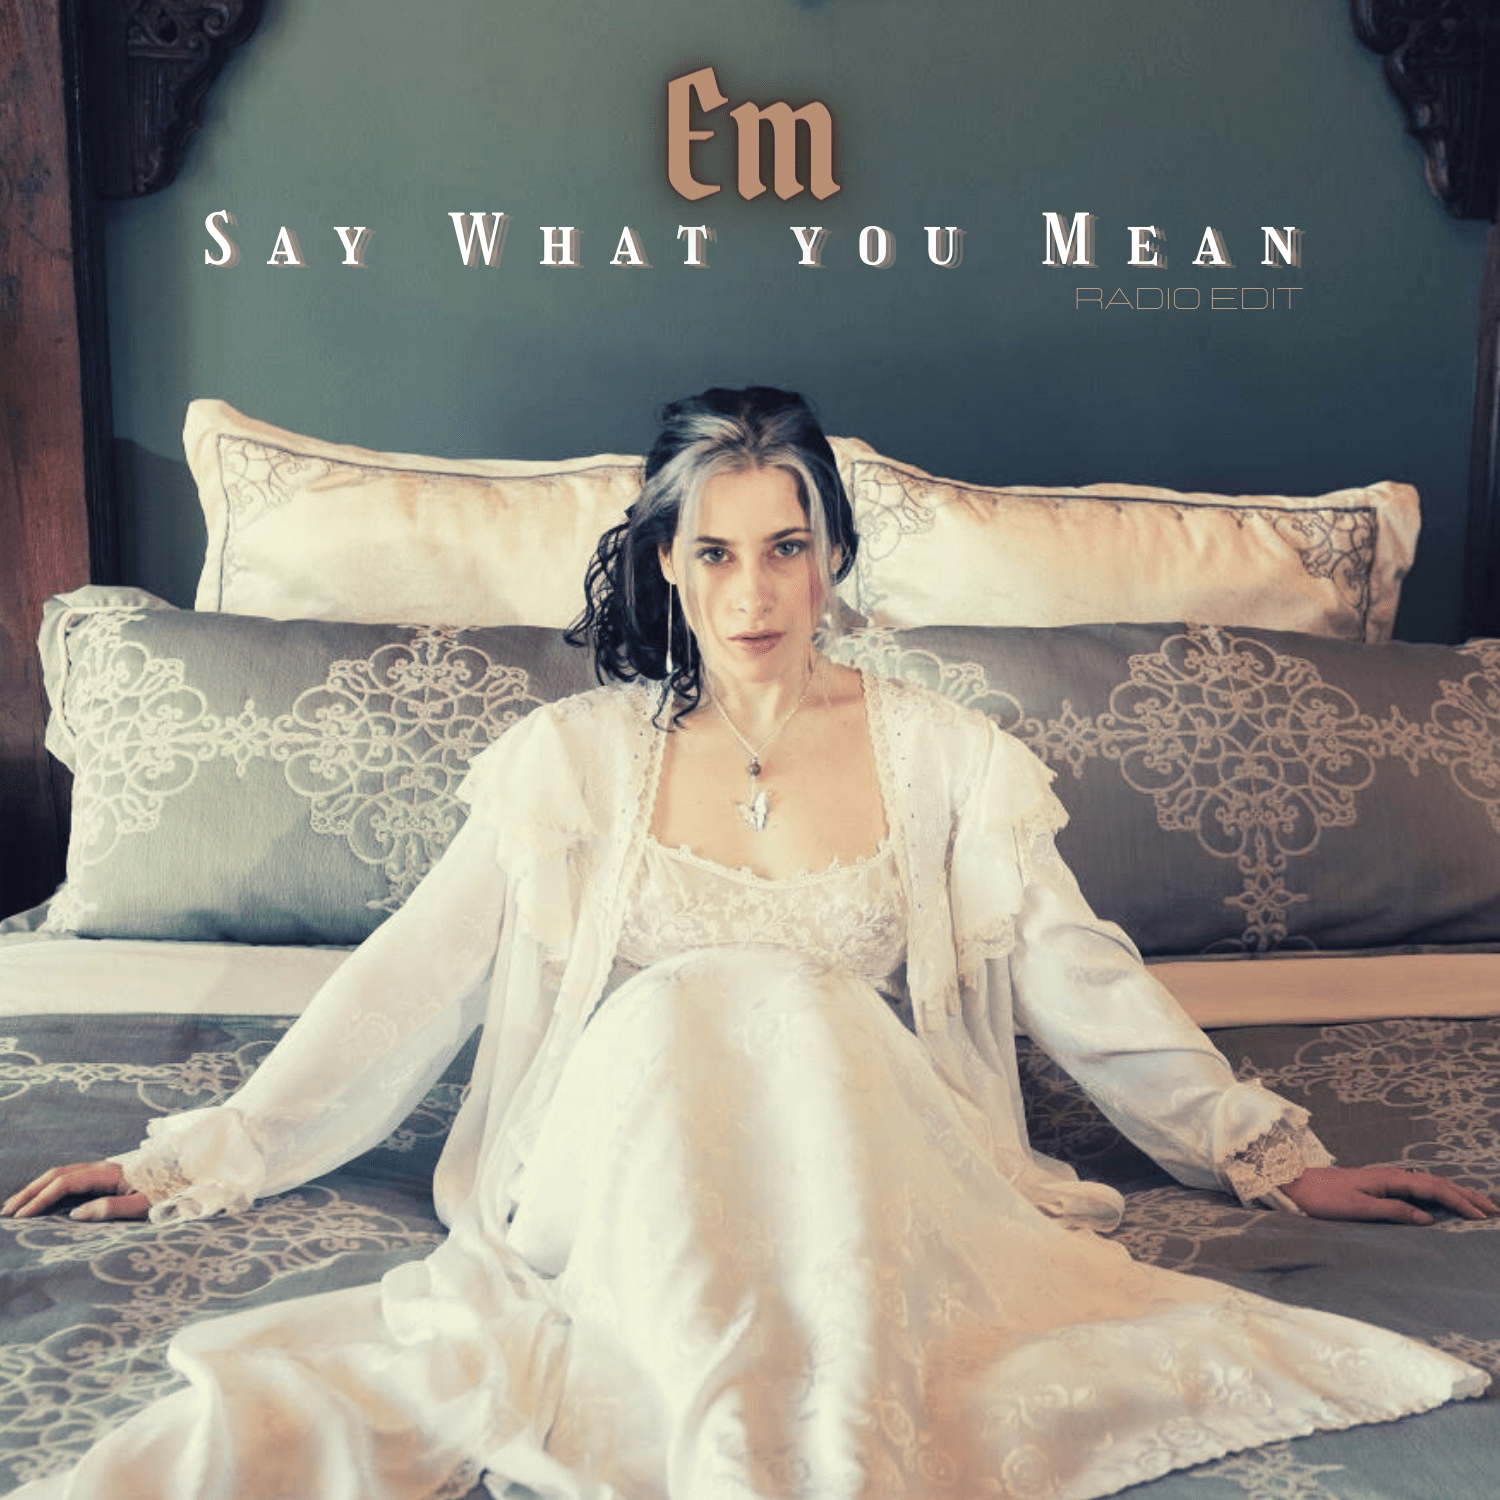 CD-COVER-EM-SAY-WHAT-YOU-MEAN-RADIO-EDIT-1.png